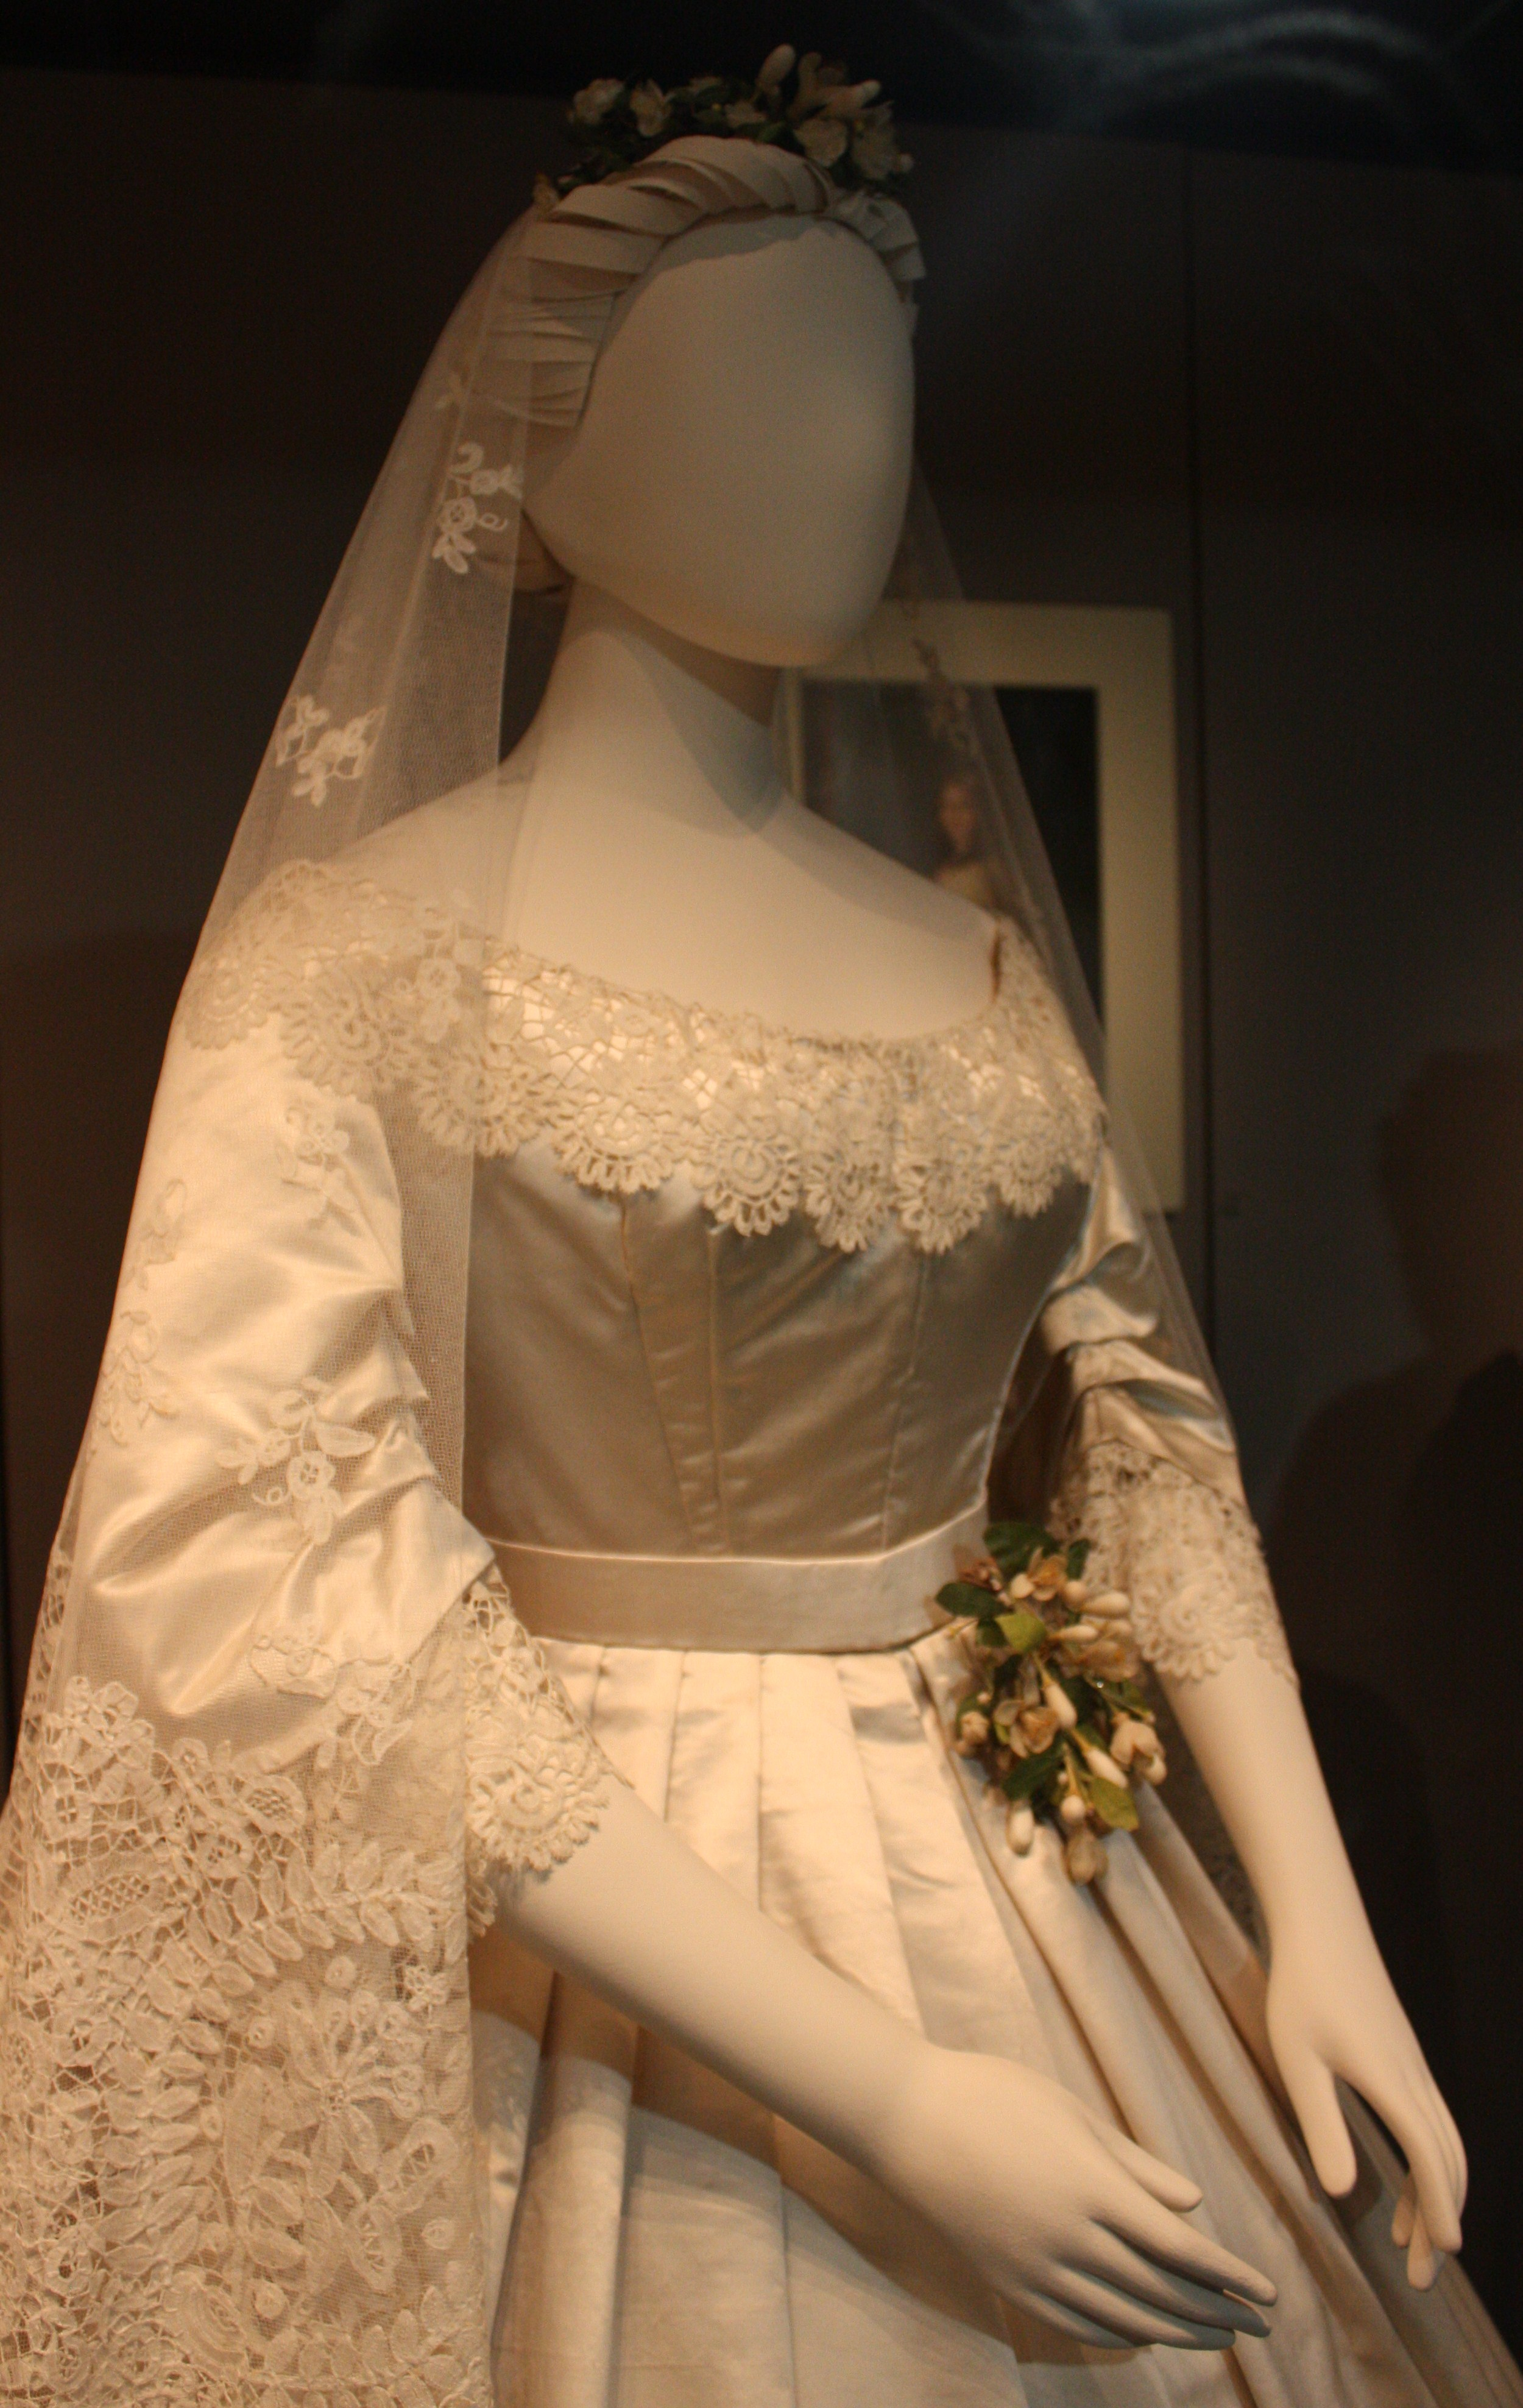 History of Honiton Lace Trimmed With Honiton Lace